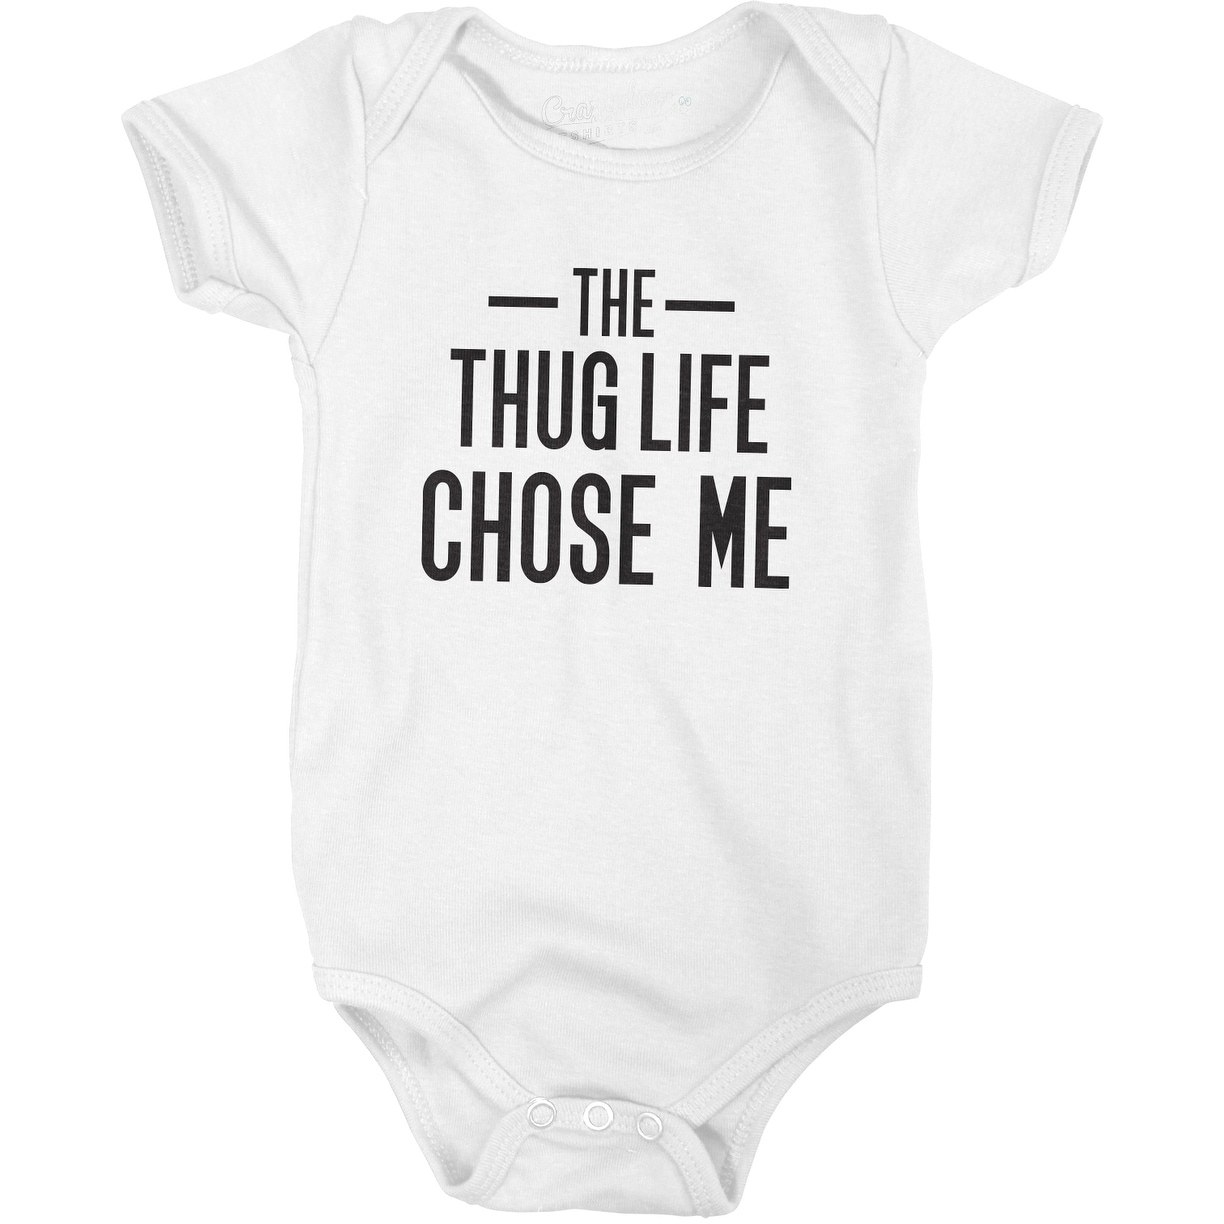 5b84ea661 Shop Thug Life Chose Me Tshirt Funny Sarcastic Infant Baby Creeper Bodysuit  in White - Free Shipping On Orders Over $45 - Overstock - 22698435